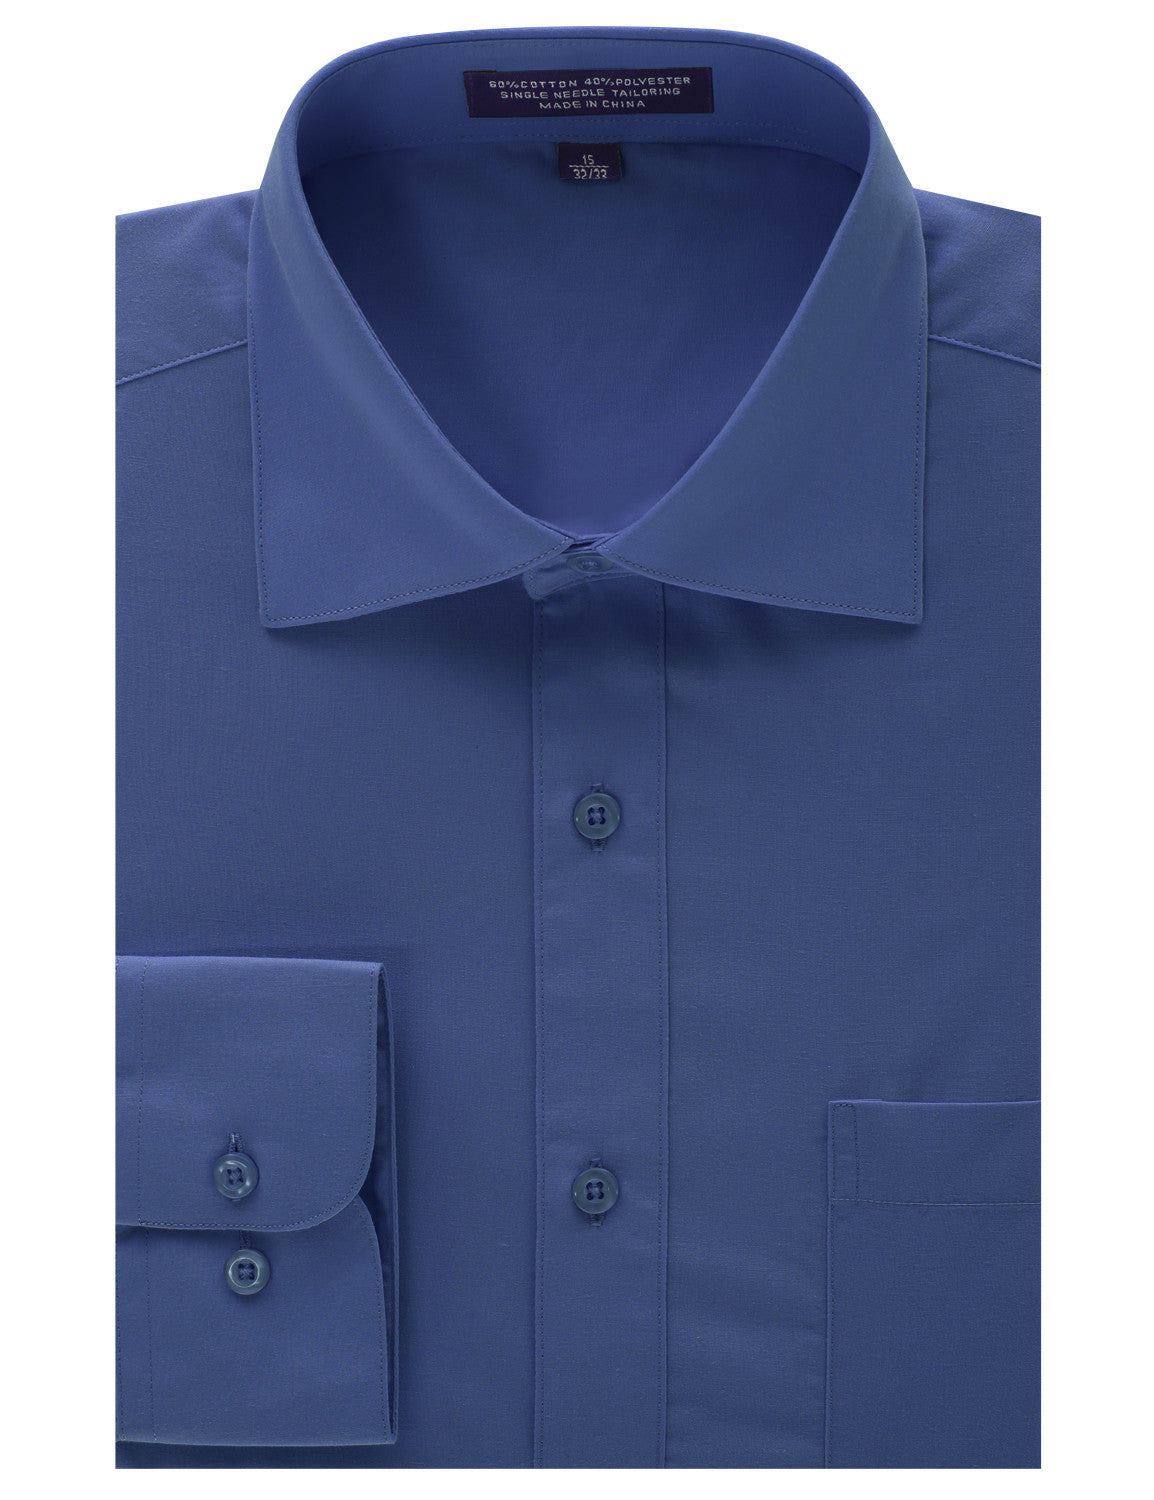 ROYALBLUE Regular Fit Dress Shirt w/ Reversible Cuff (Big & Tall Available)- MONDAYSUIT